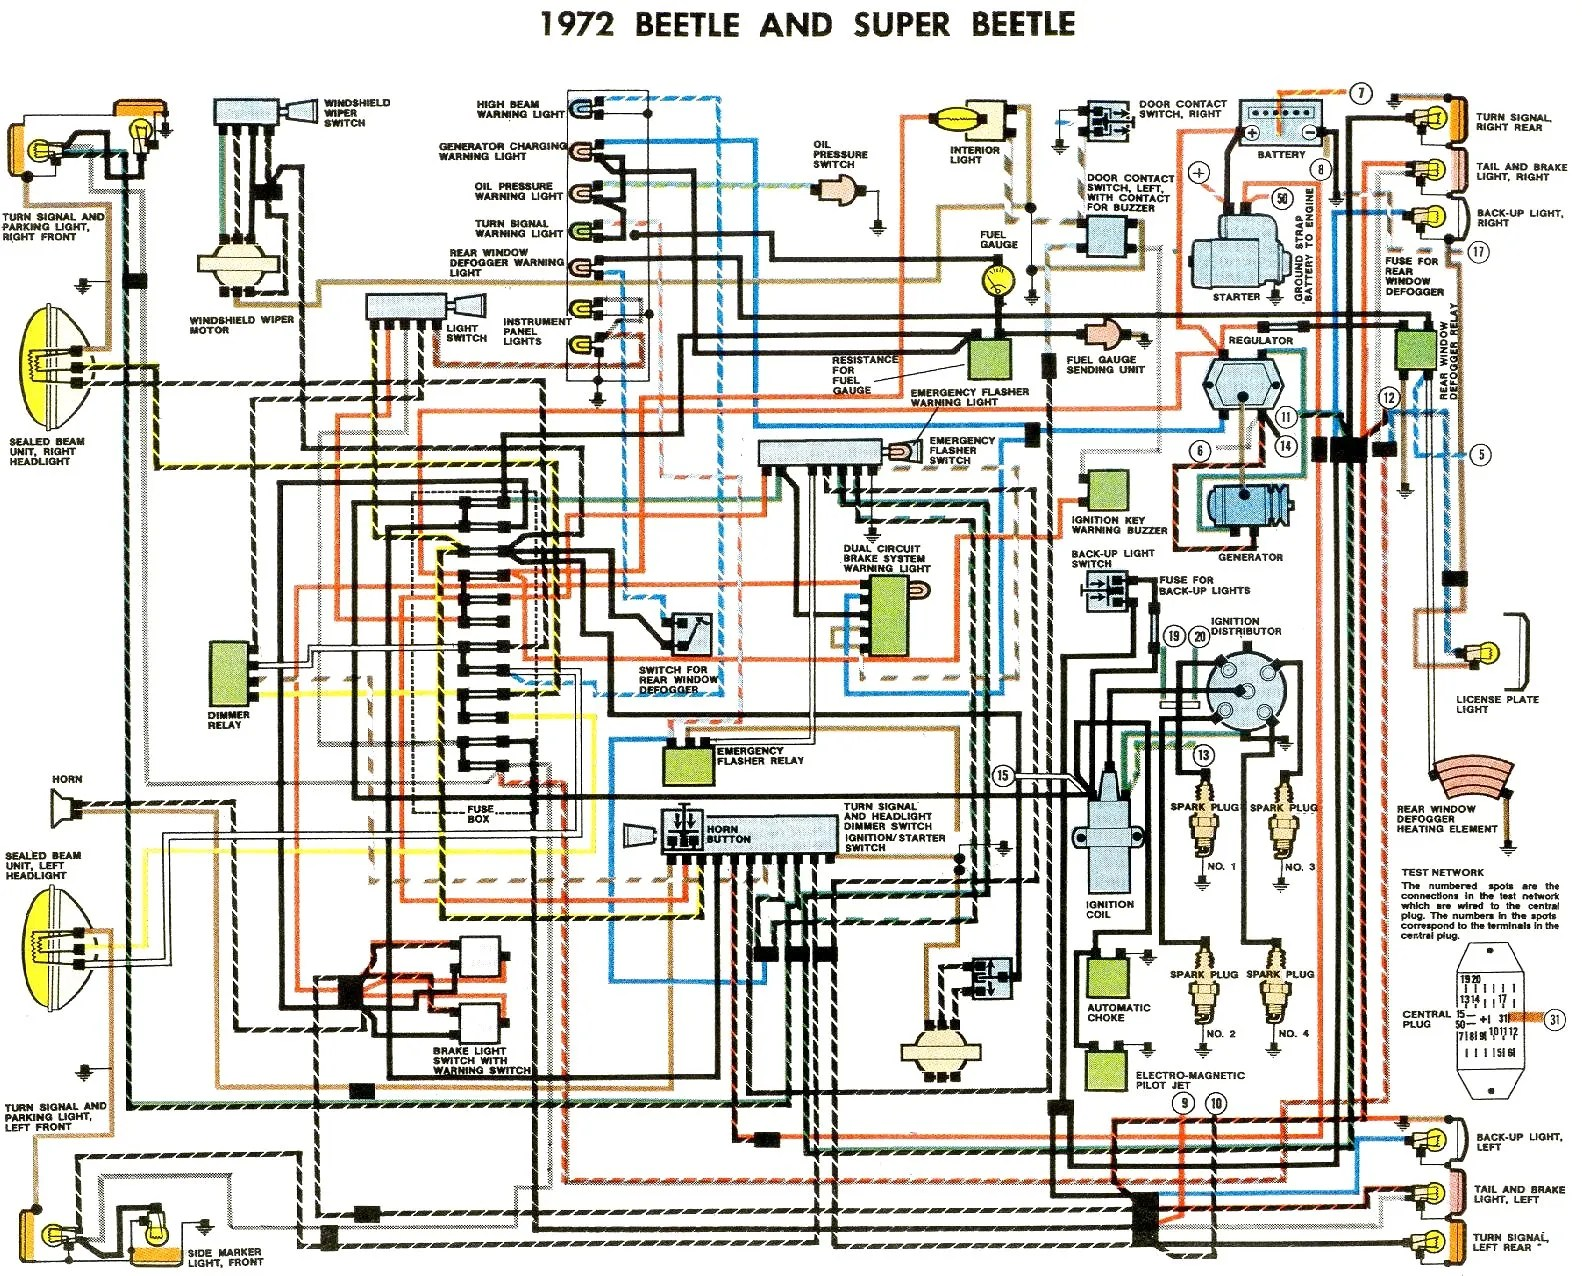 small resolution of wiring upb leviton diagram 35a001cfl wiring diagram blog wiring upb leviton diagram 35a001cfl